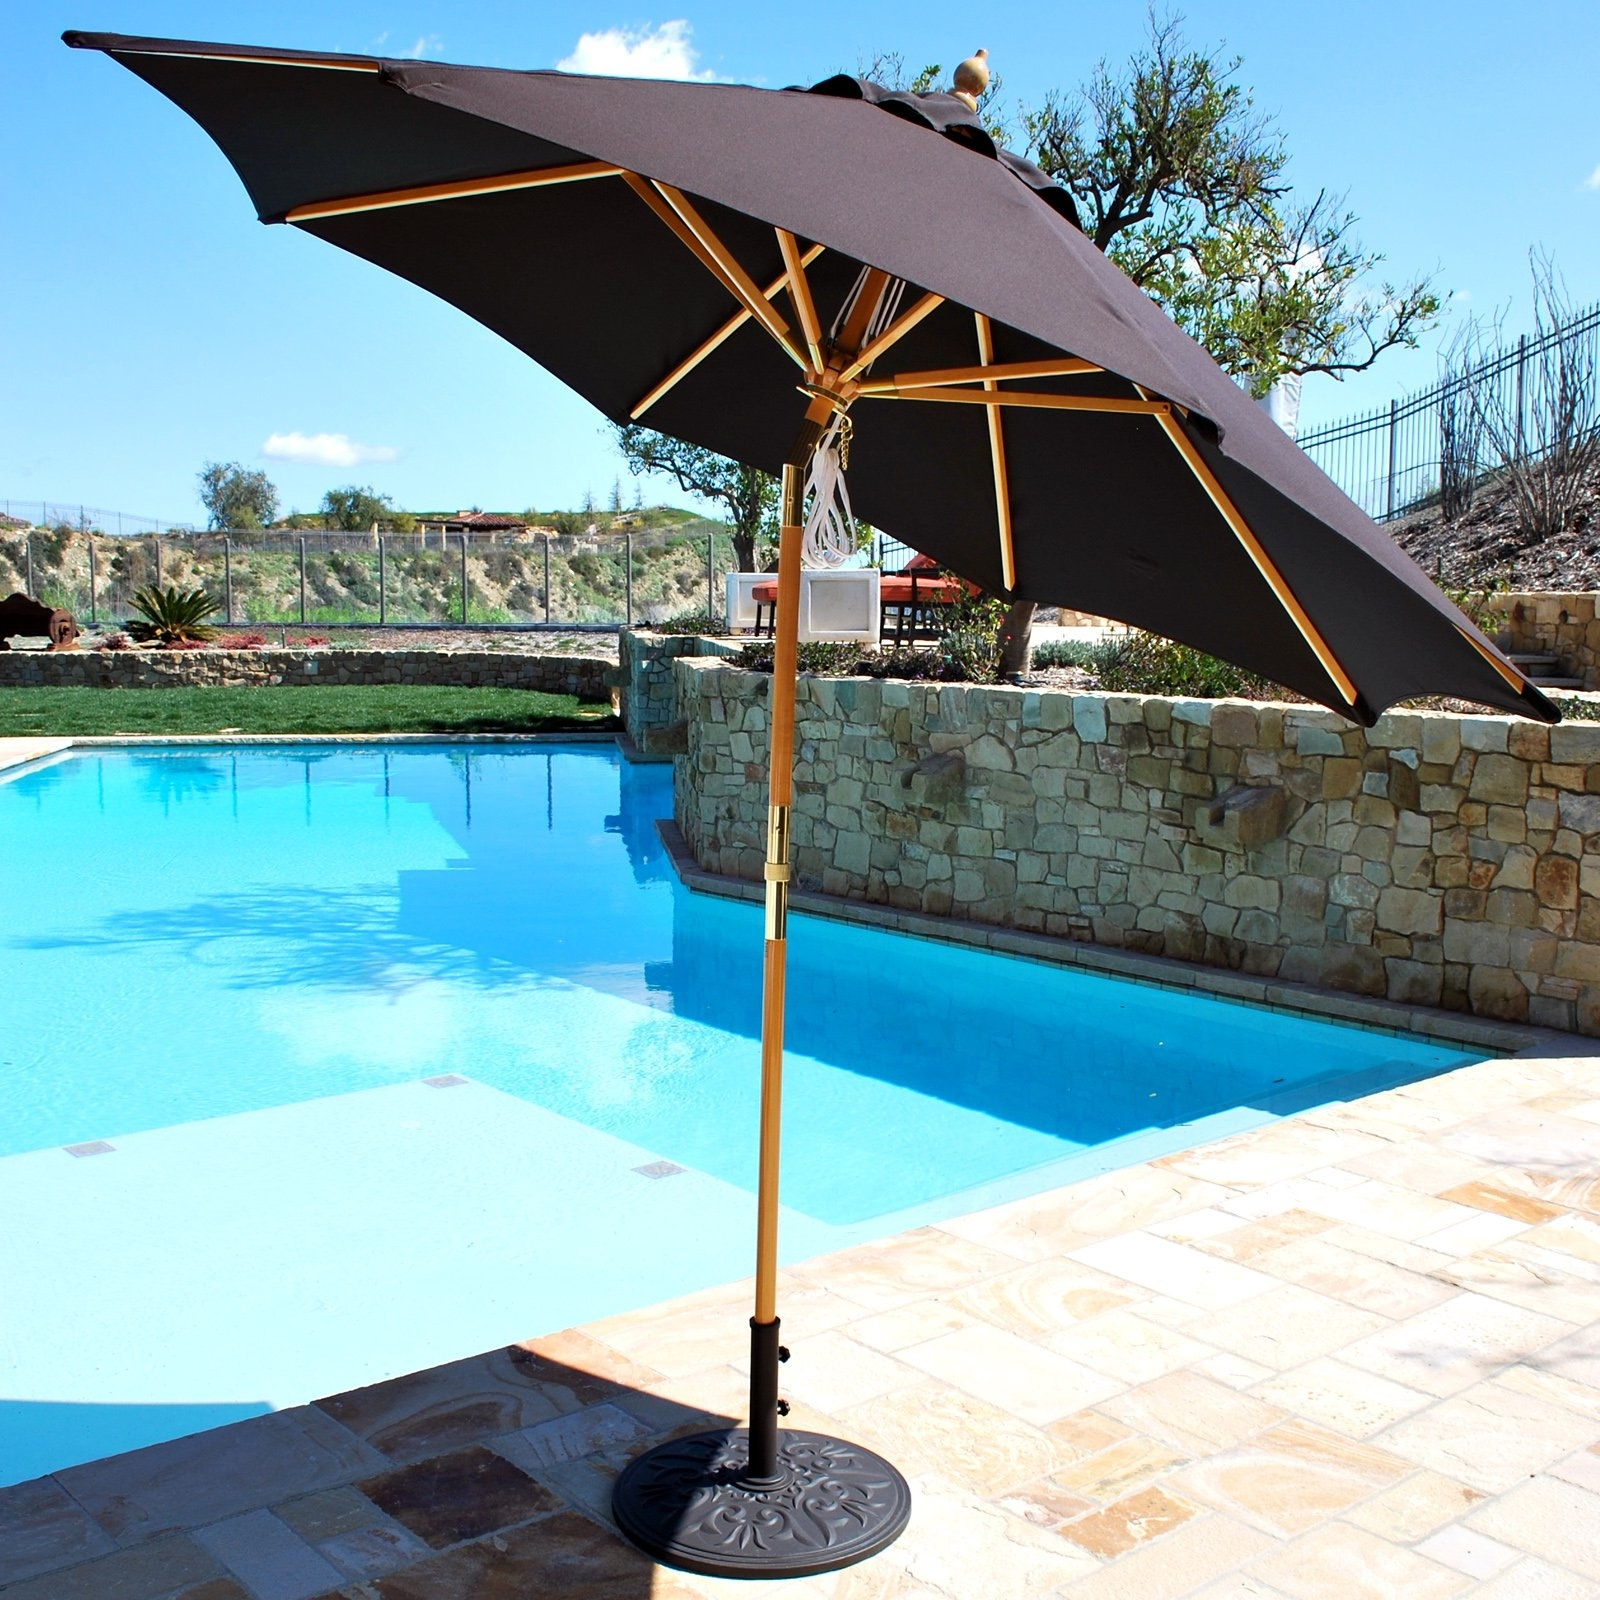 Wood Patio Umbrellas Custom Wooden Patio Umbrellas – Home Design Ideas In Most Popular Wooden Patio Umbrellas (View 15 of 20)